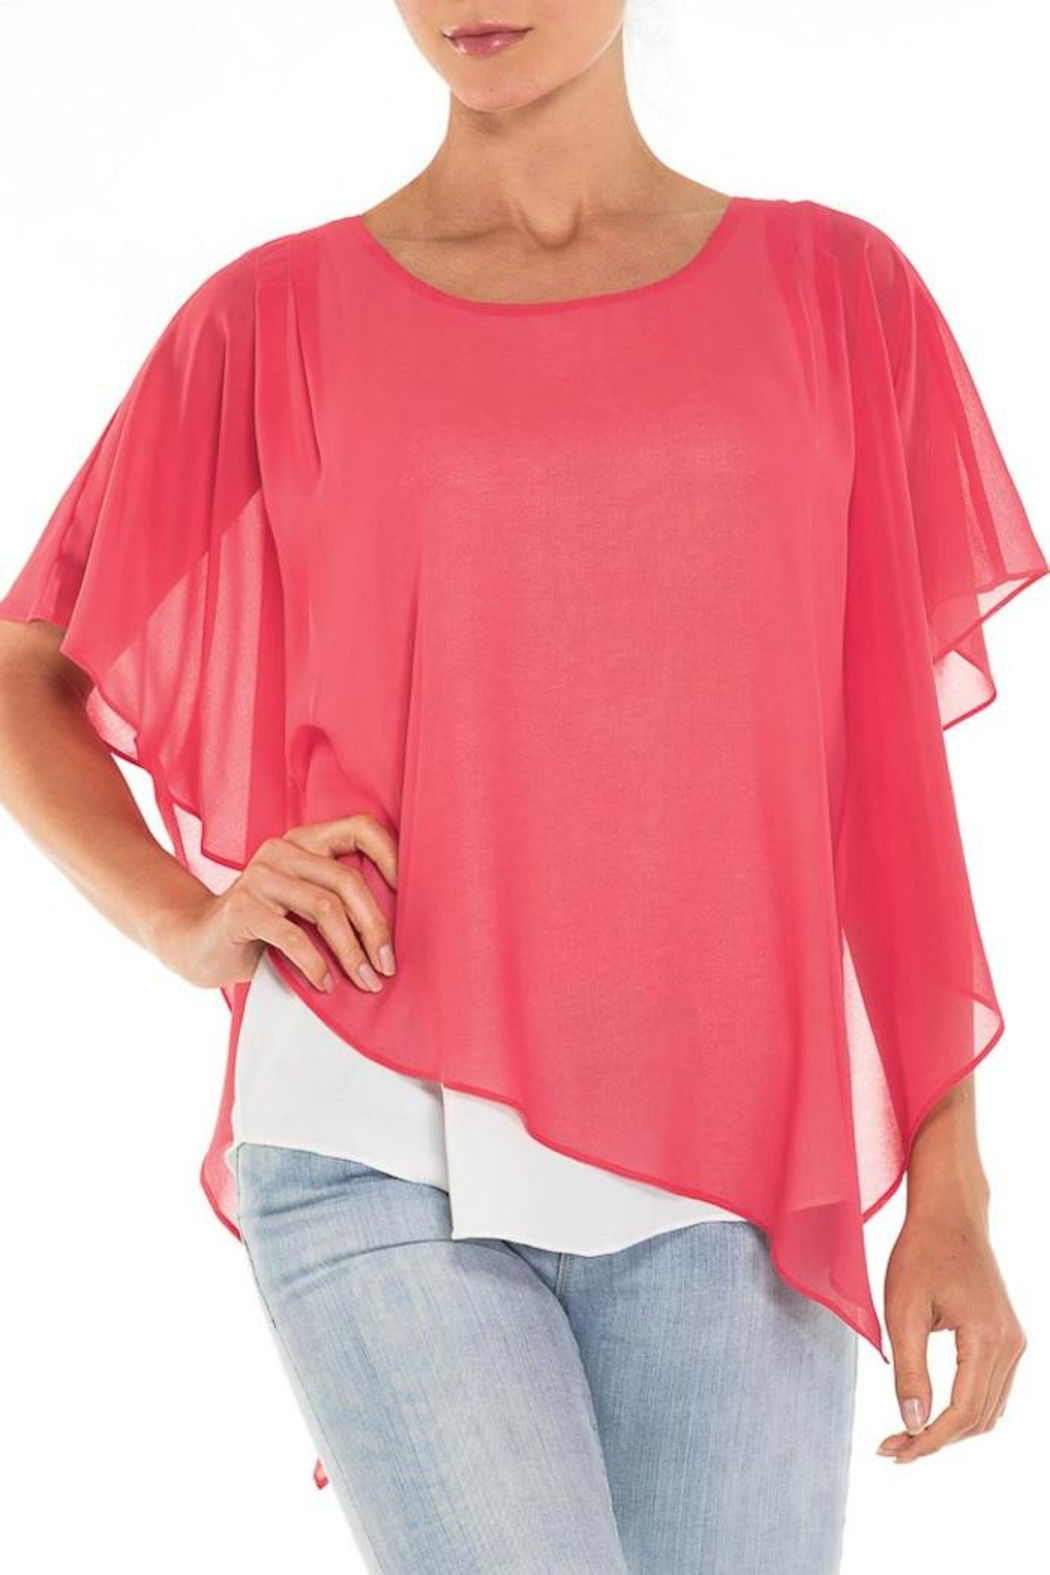 Alison Sheri Coral Shawl Top - Front Cropped Image